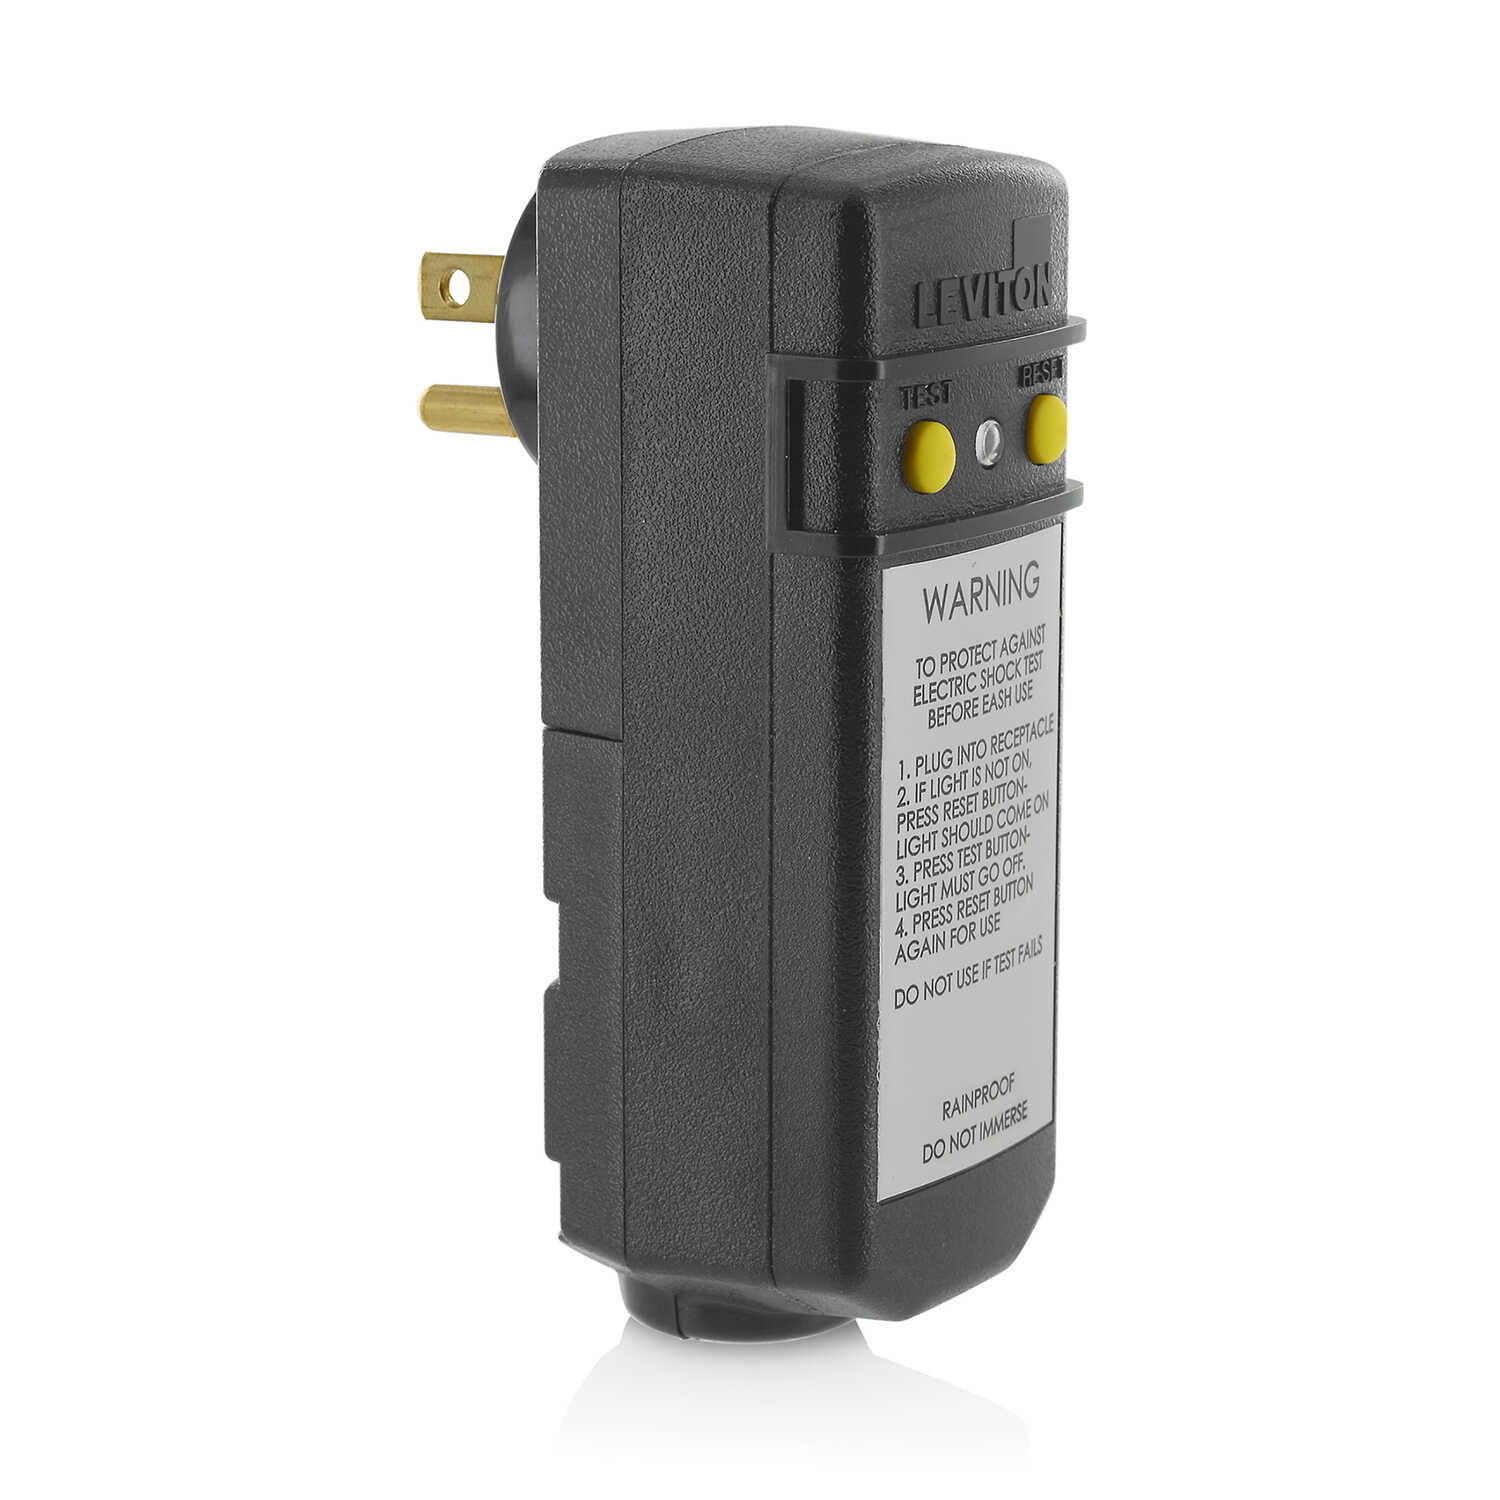 Leviton Commercial and Residential Thermoplastic GFCI Plug 5